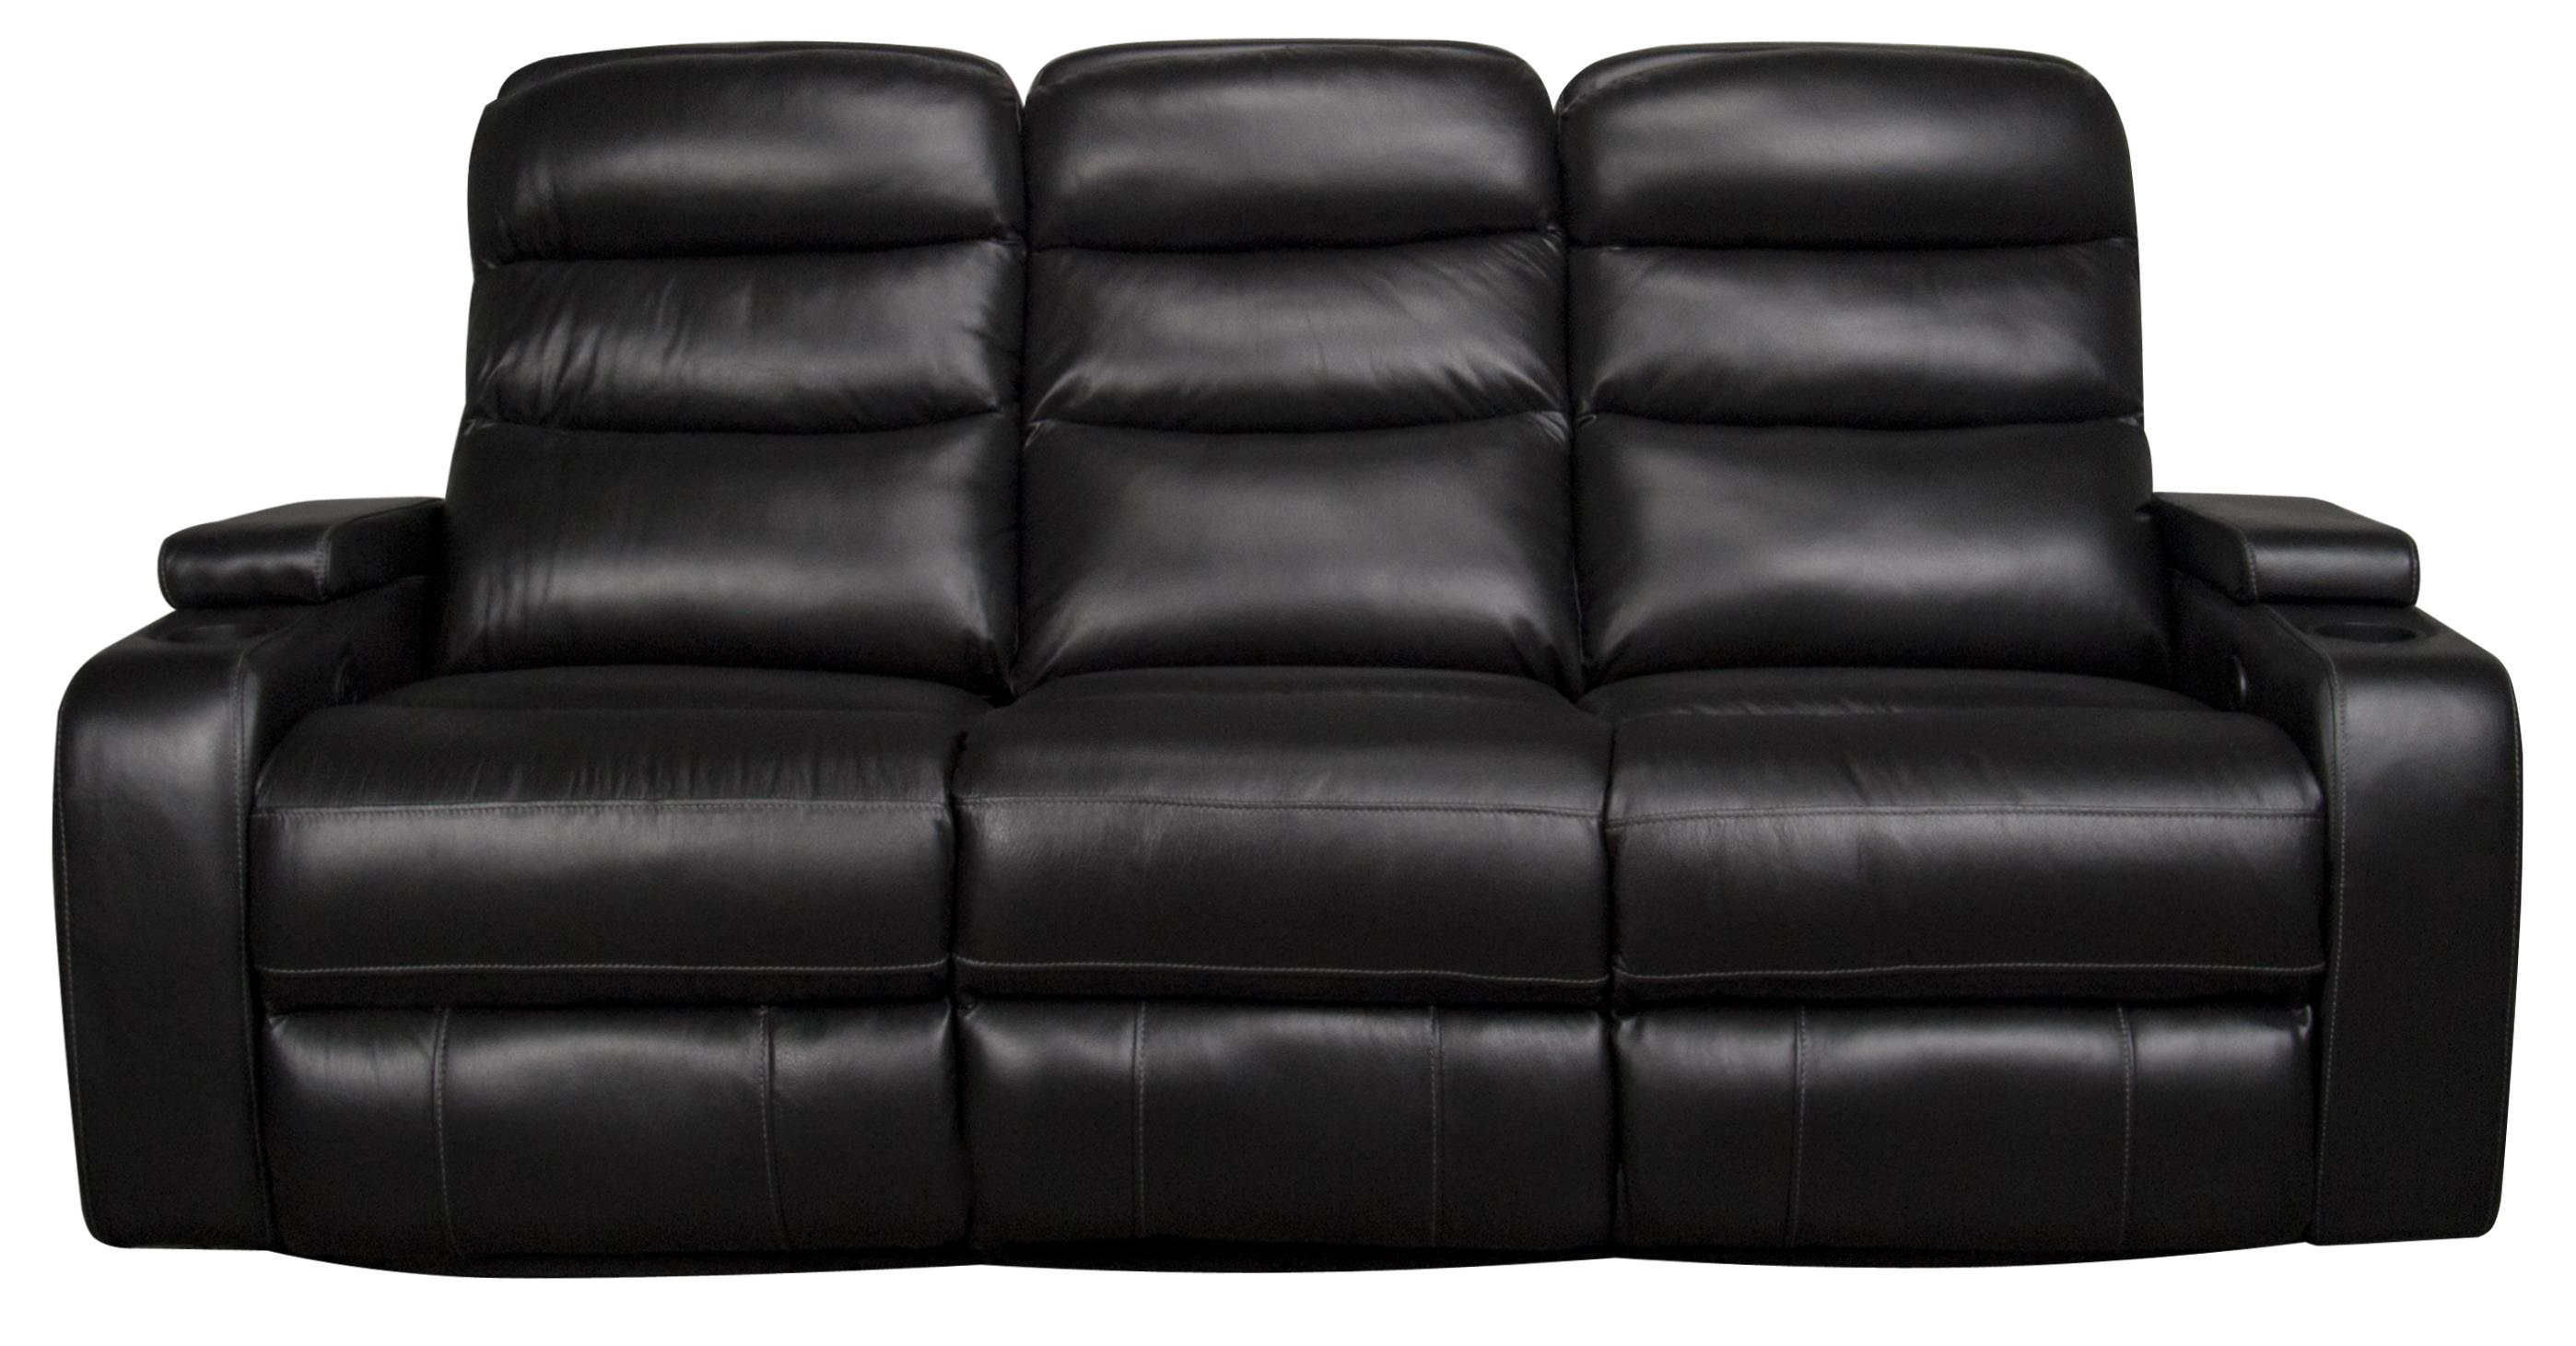 Morris Home Furnishings Robert Robert Power Leather-Match* Reclining Sofa - Item Number: 249235134